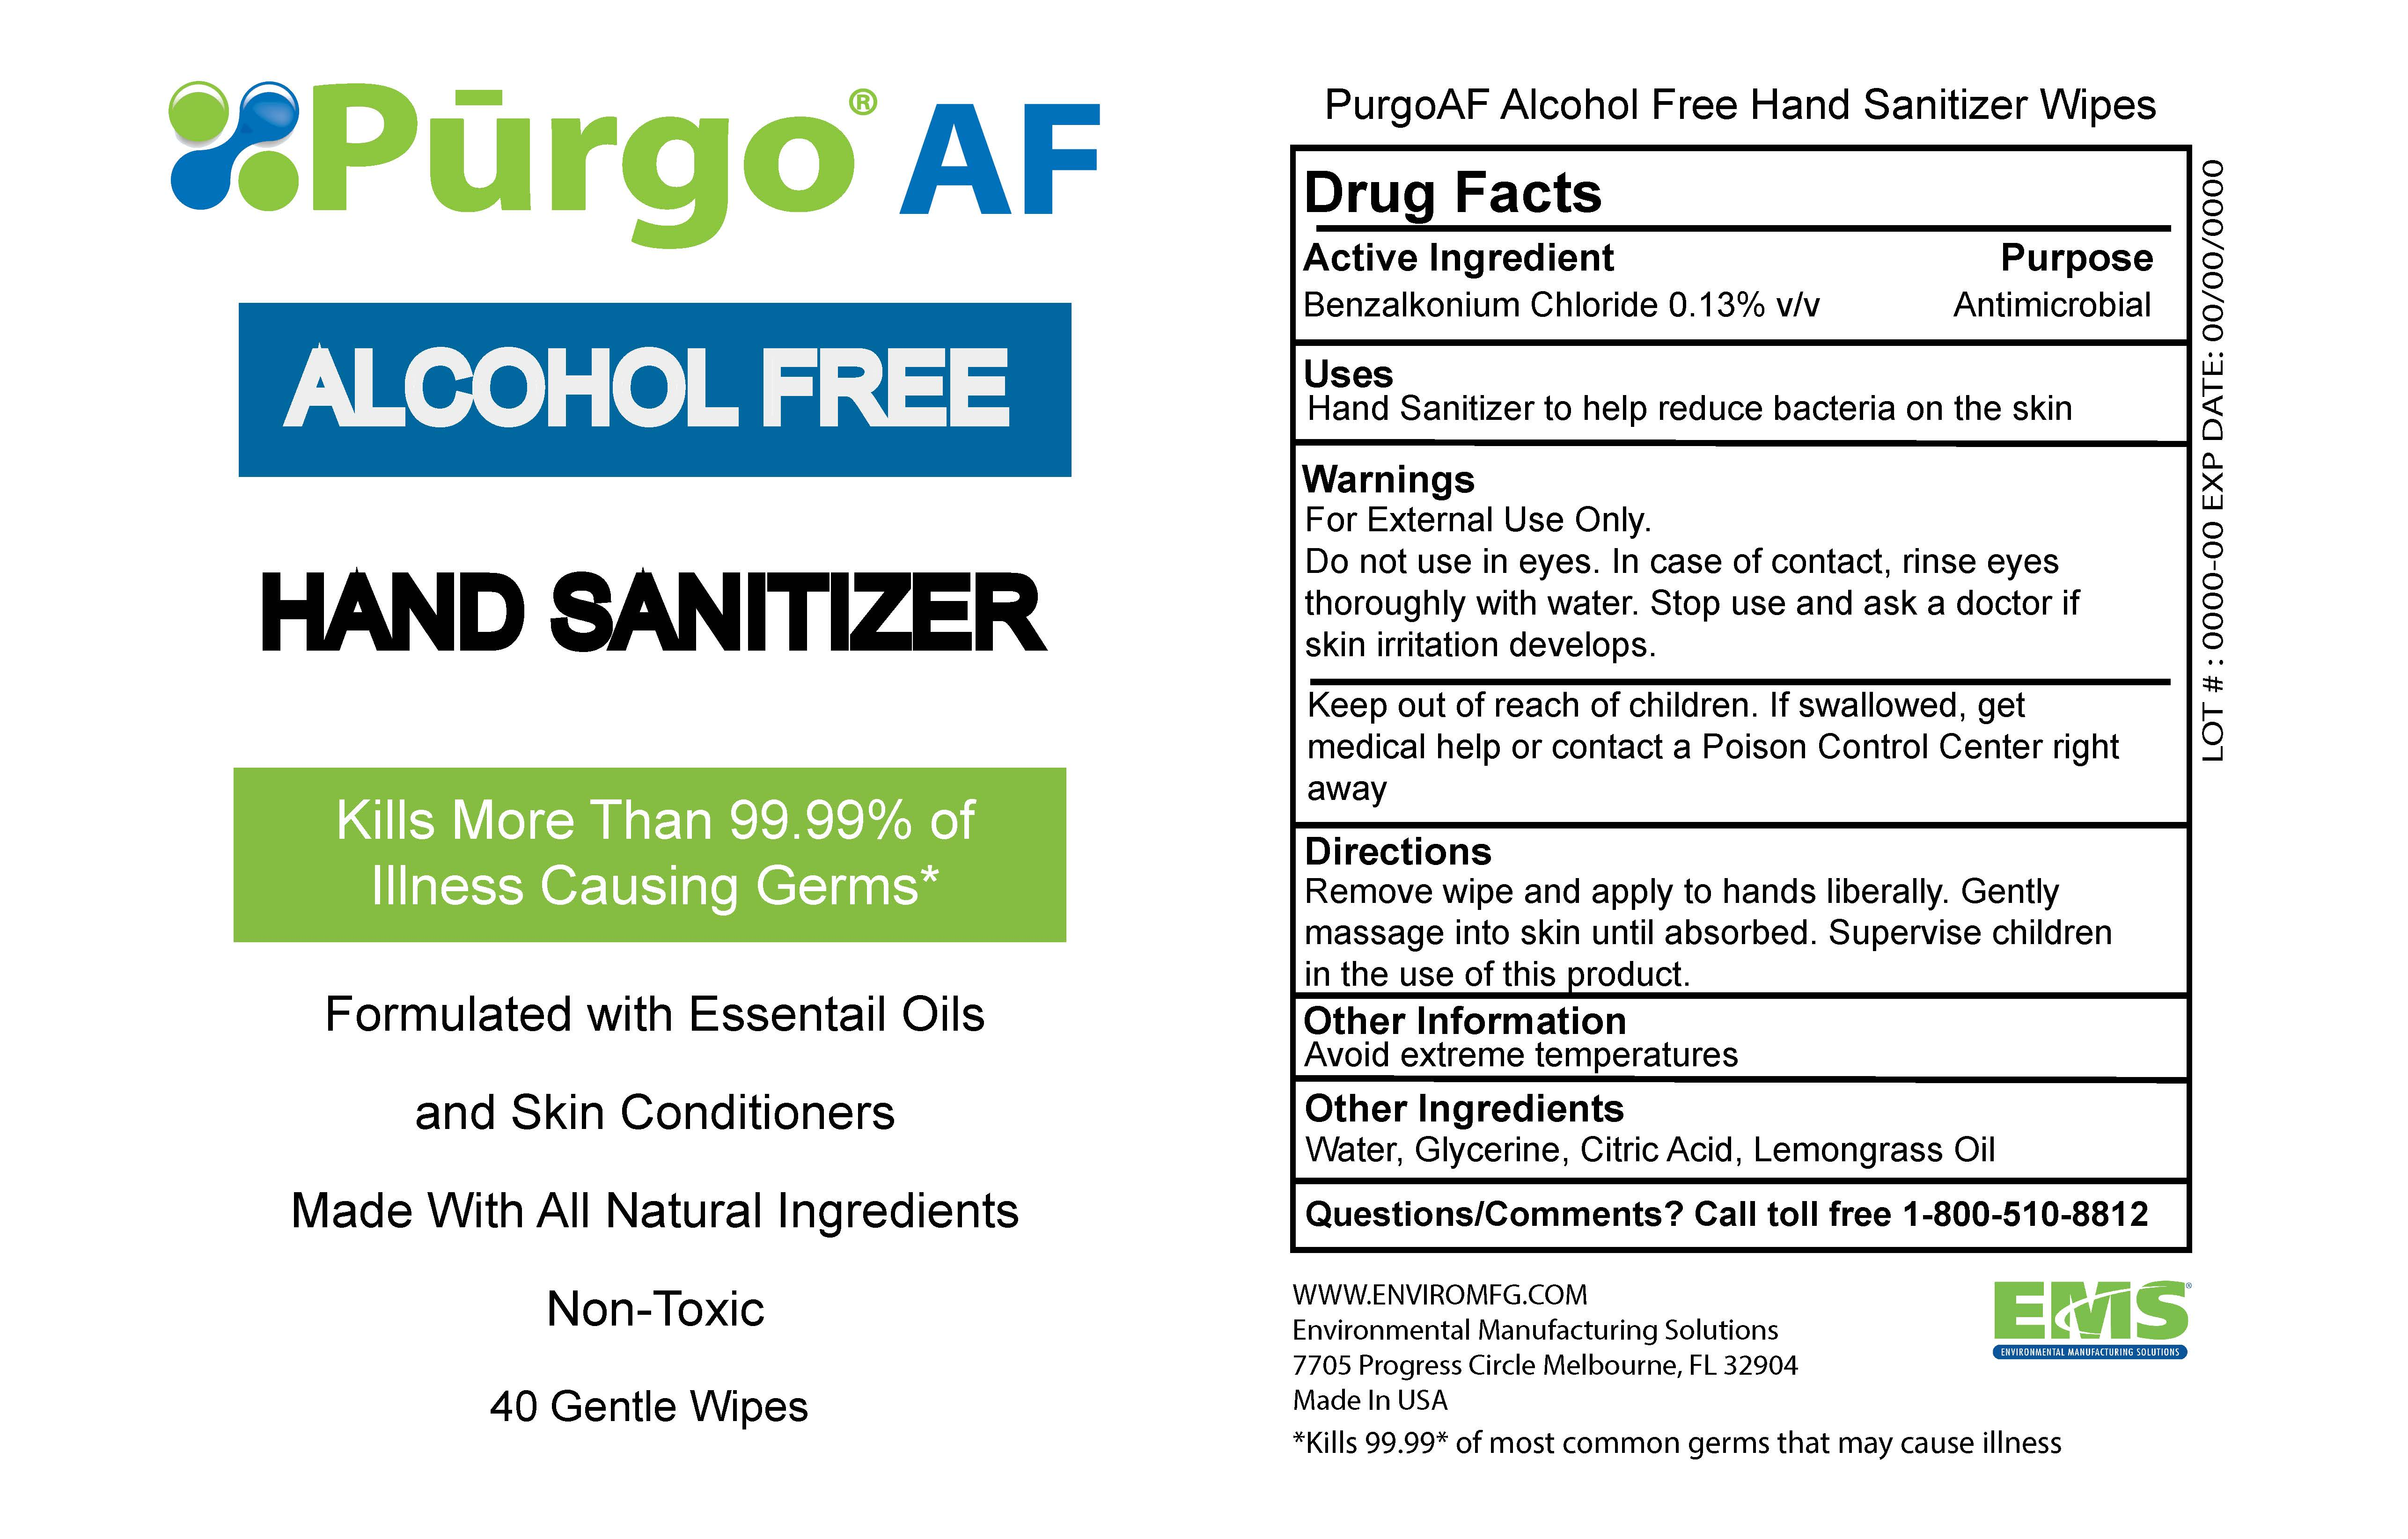 Package label sanitizer wipes